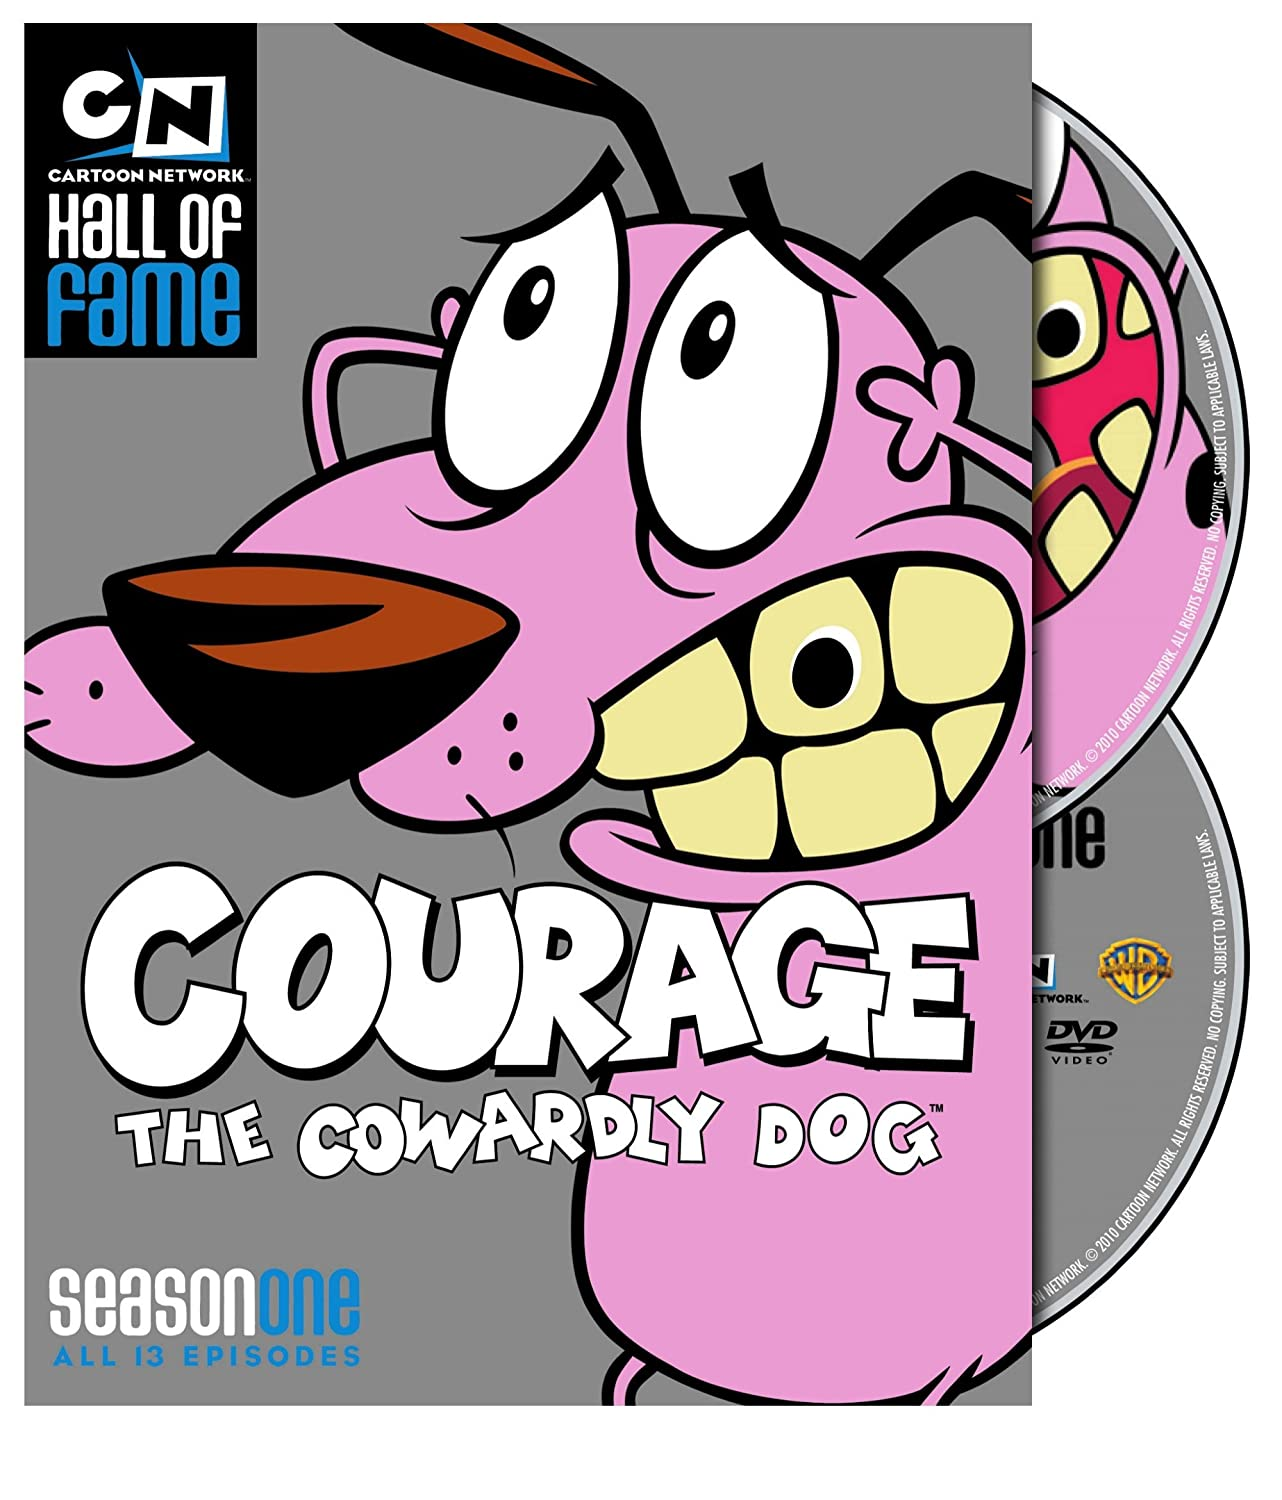 Amazon Com Courage The Cowardly Dog Season 1 Cartoon Network Hall Of Fame Thea White Marty Grabstein Simon Prebble Lionel G Wilson Billie Lou Watt Paul